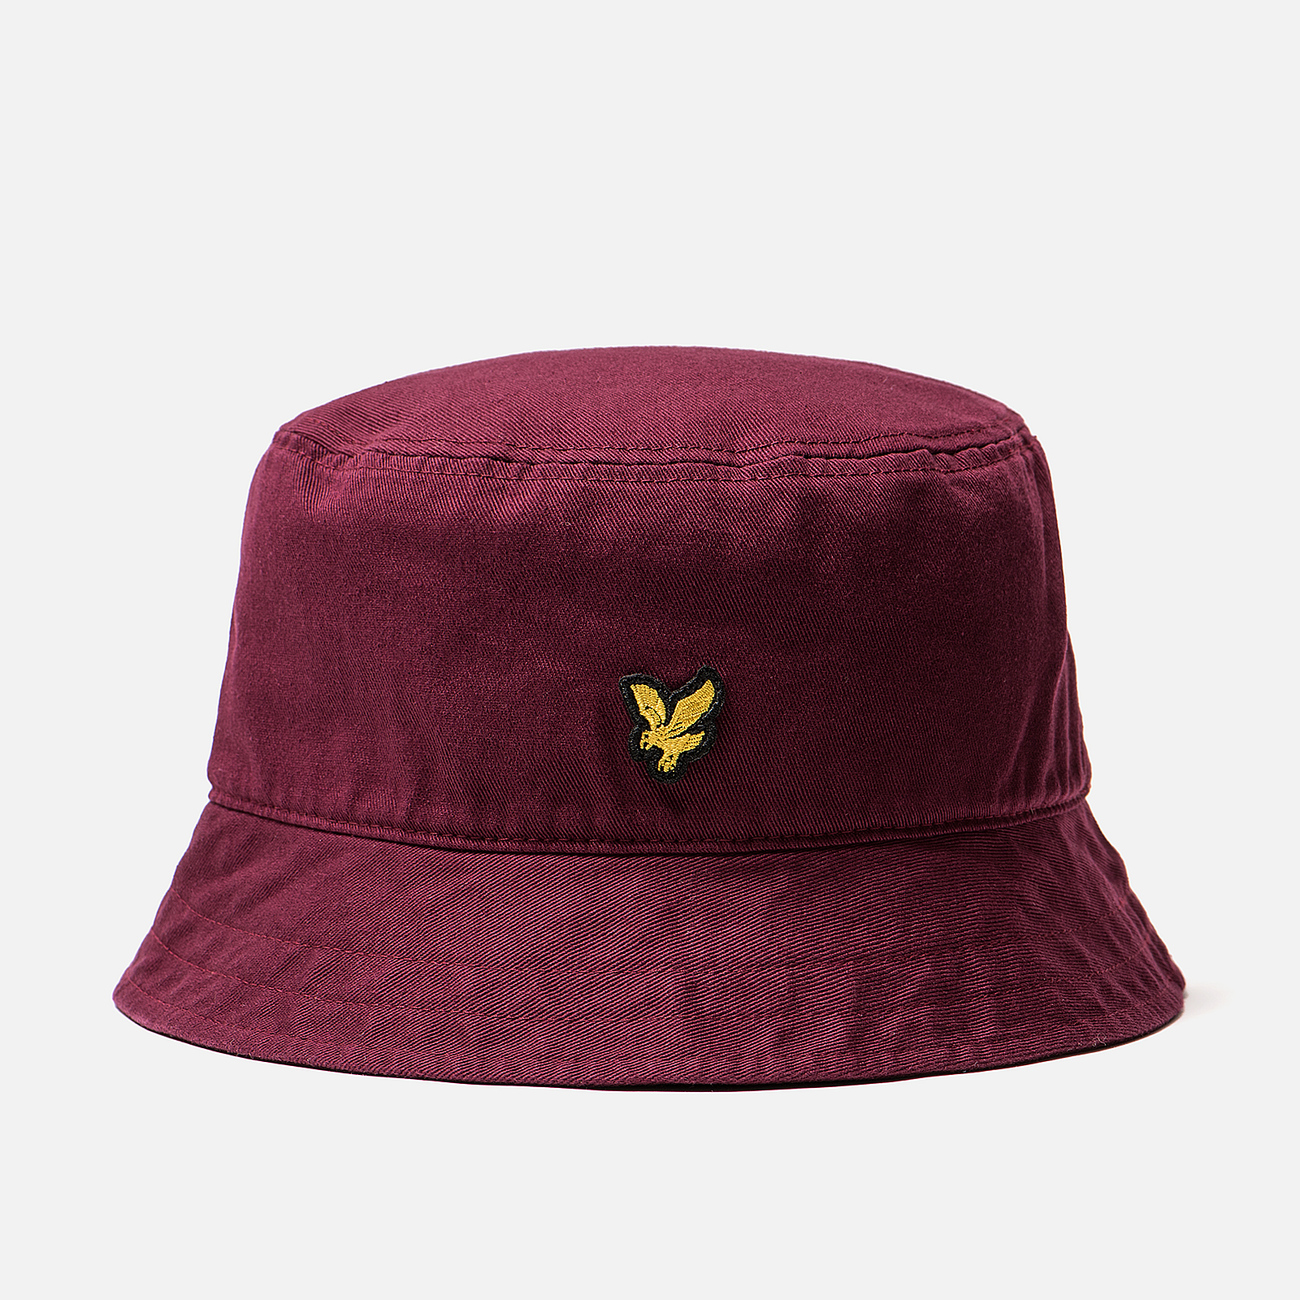 Панама Lyle & Scott Cotton Twill Bucket Claret Jug